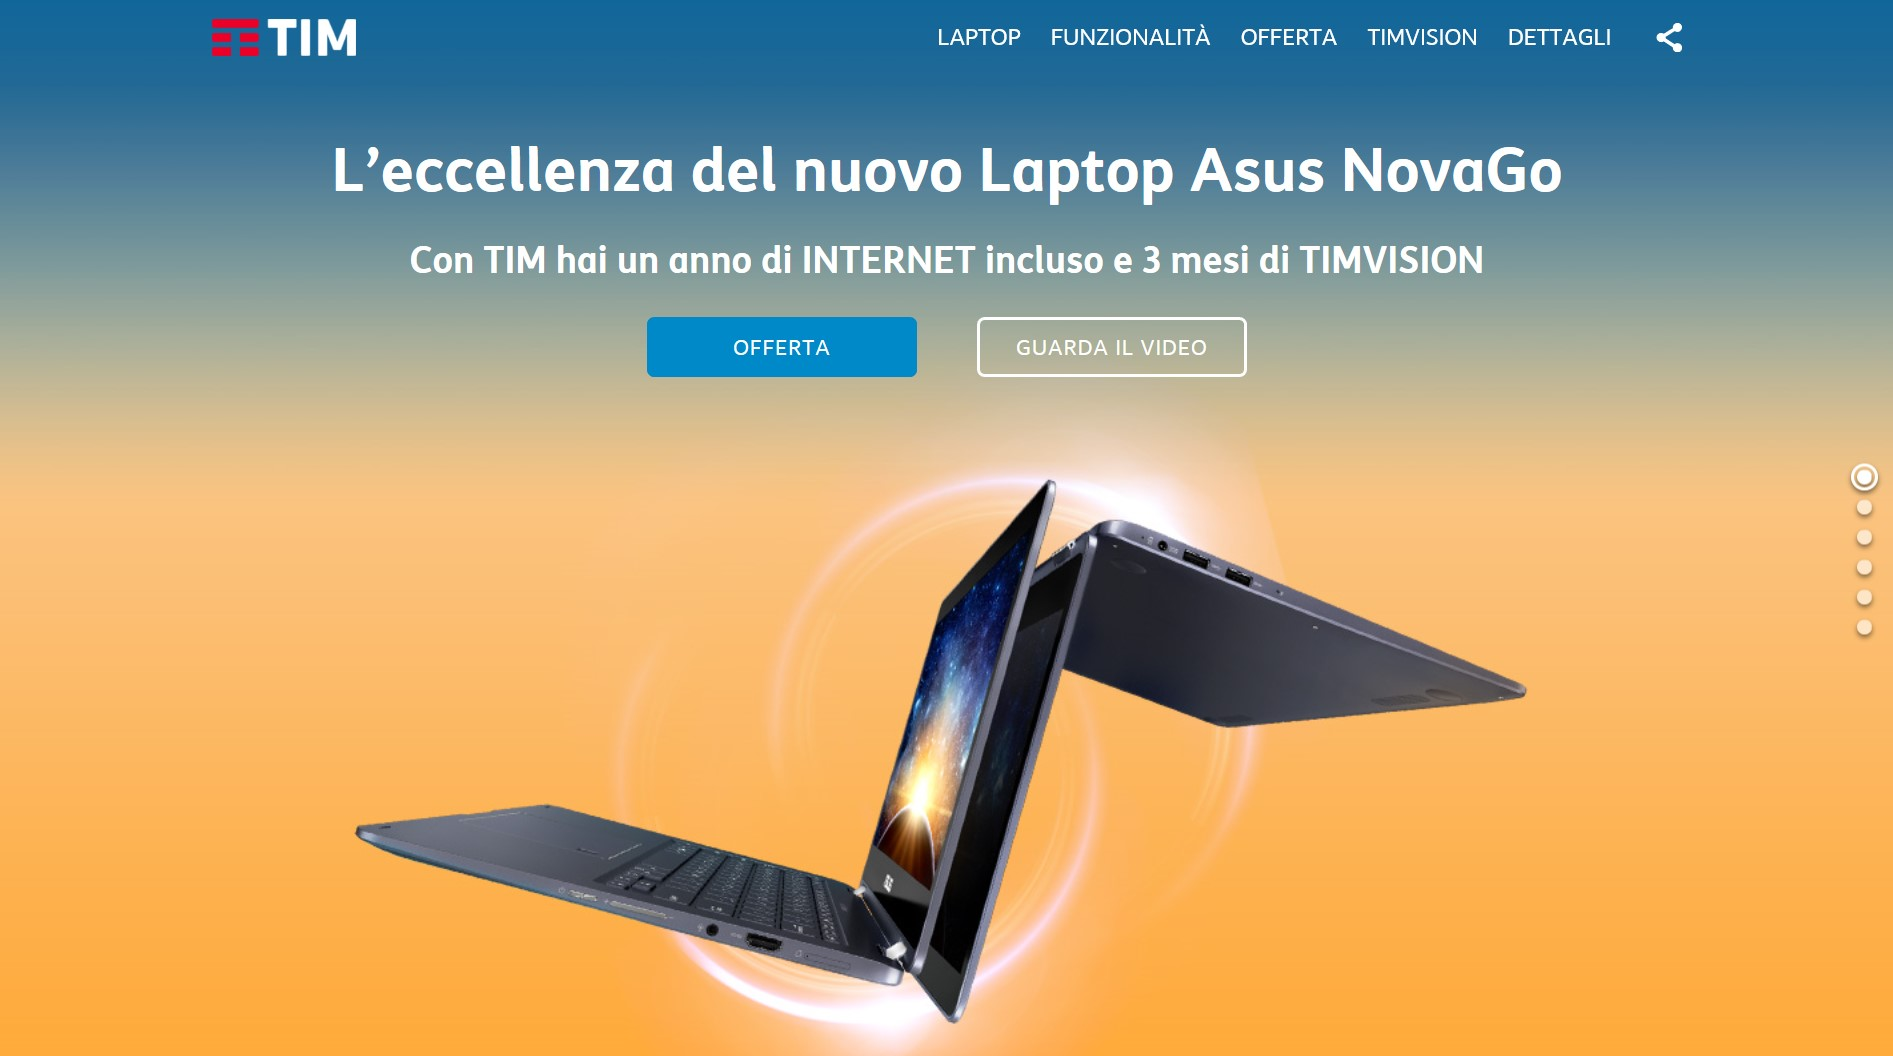 Tim Asus Nova Go Windows 10 on Arm